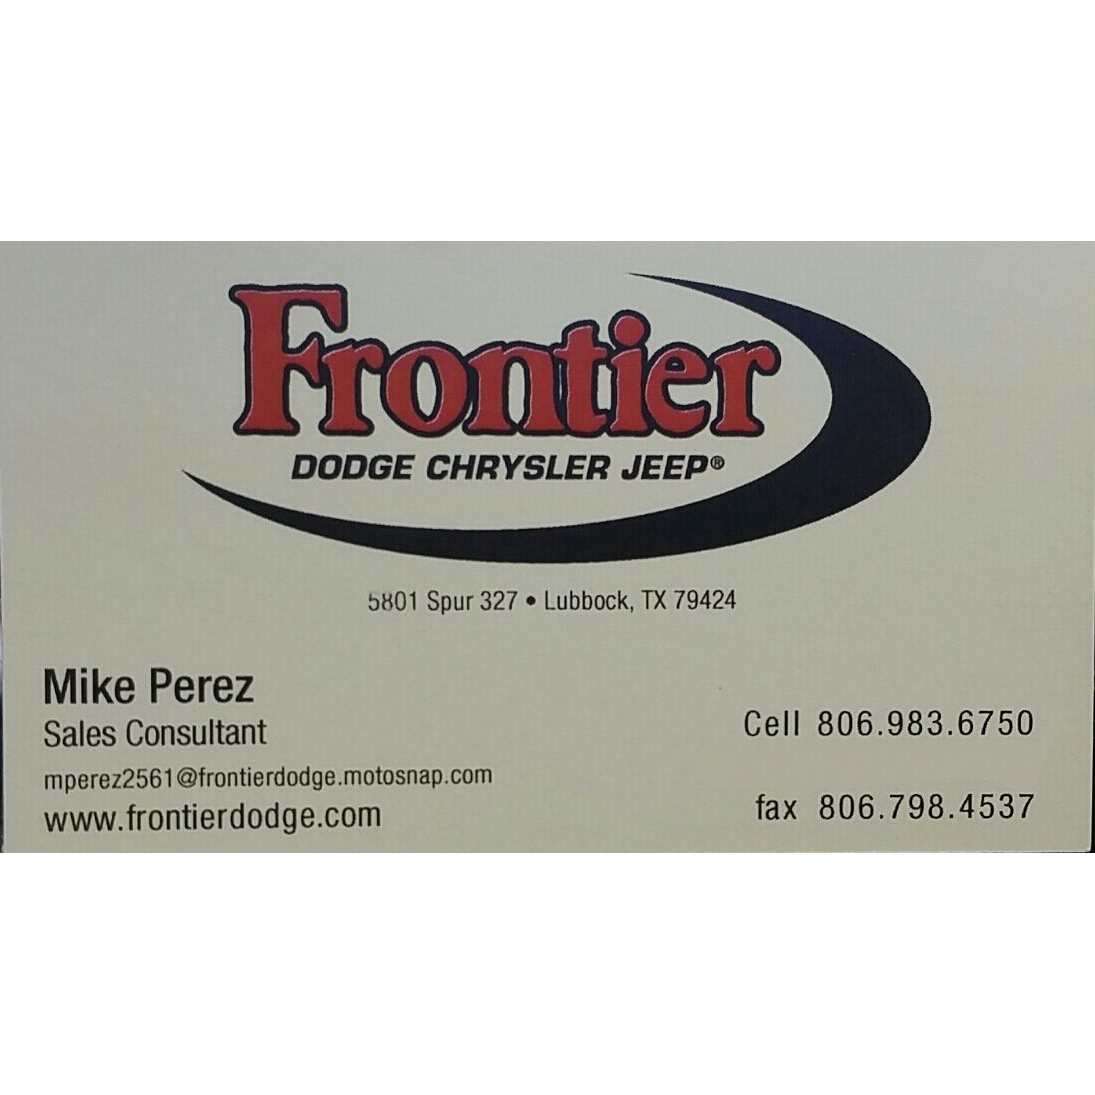 image of MIKE PEREZ at Frontier DODGE